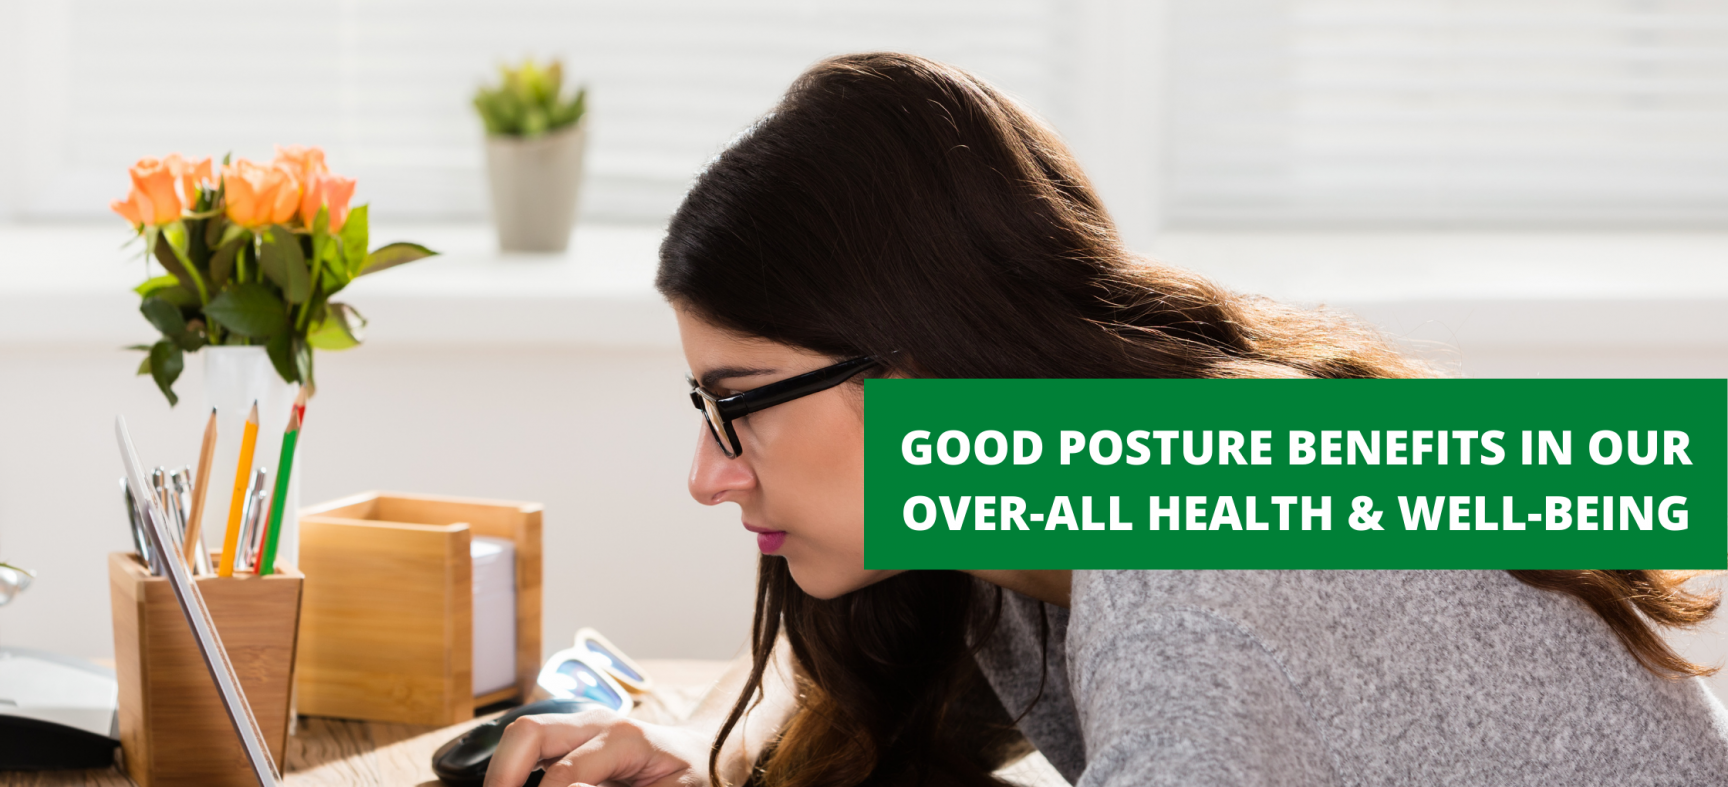 GOOD POSTURE BENEFITS IN OUR OVER-ALL HEALTH & WELL-BEING